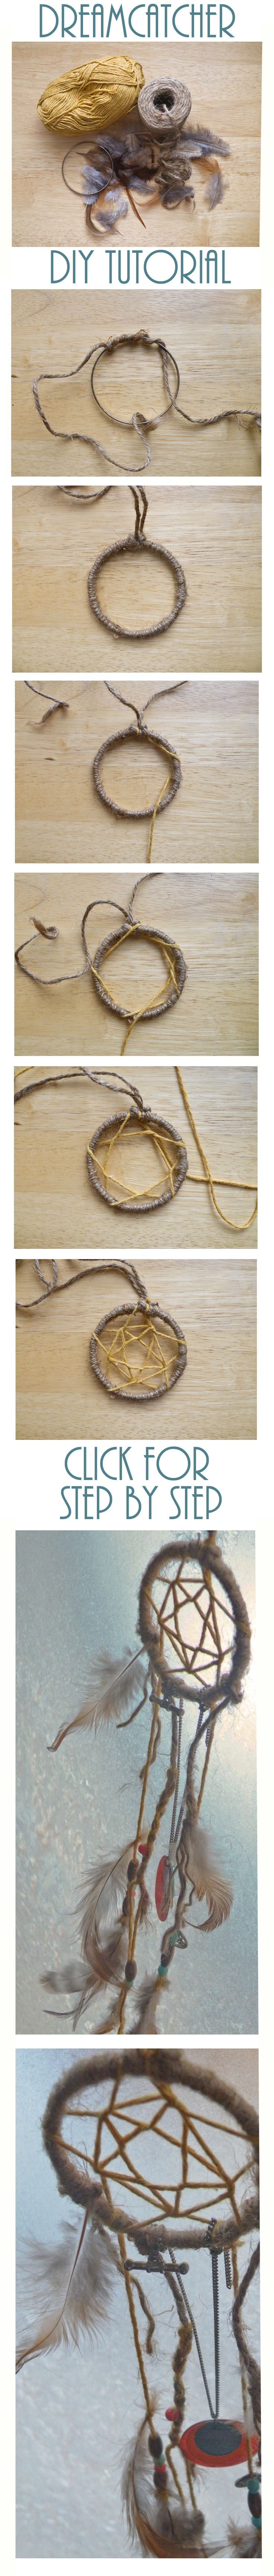 Dreamcatcher DIY Tutorial!